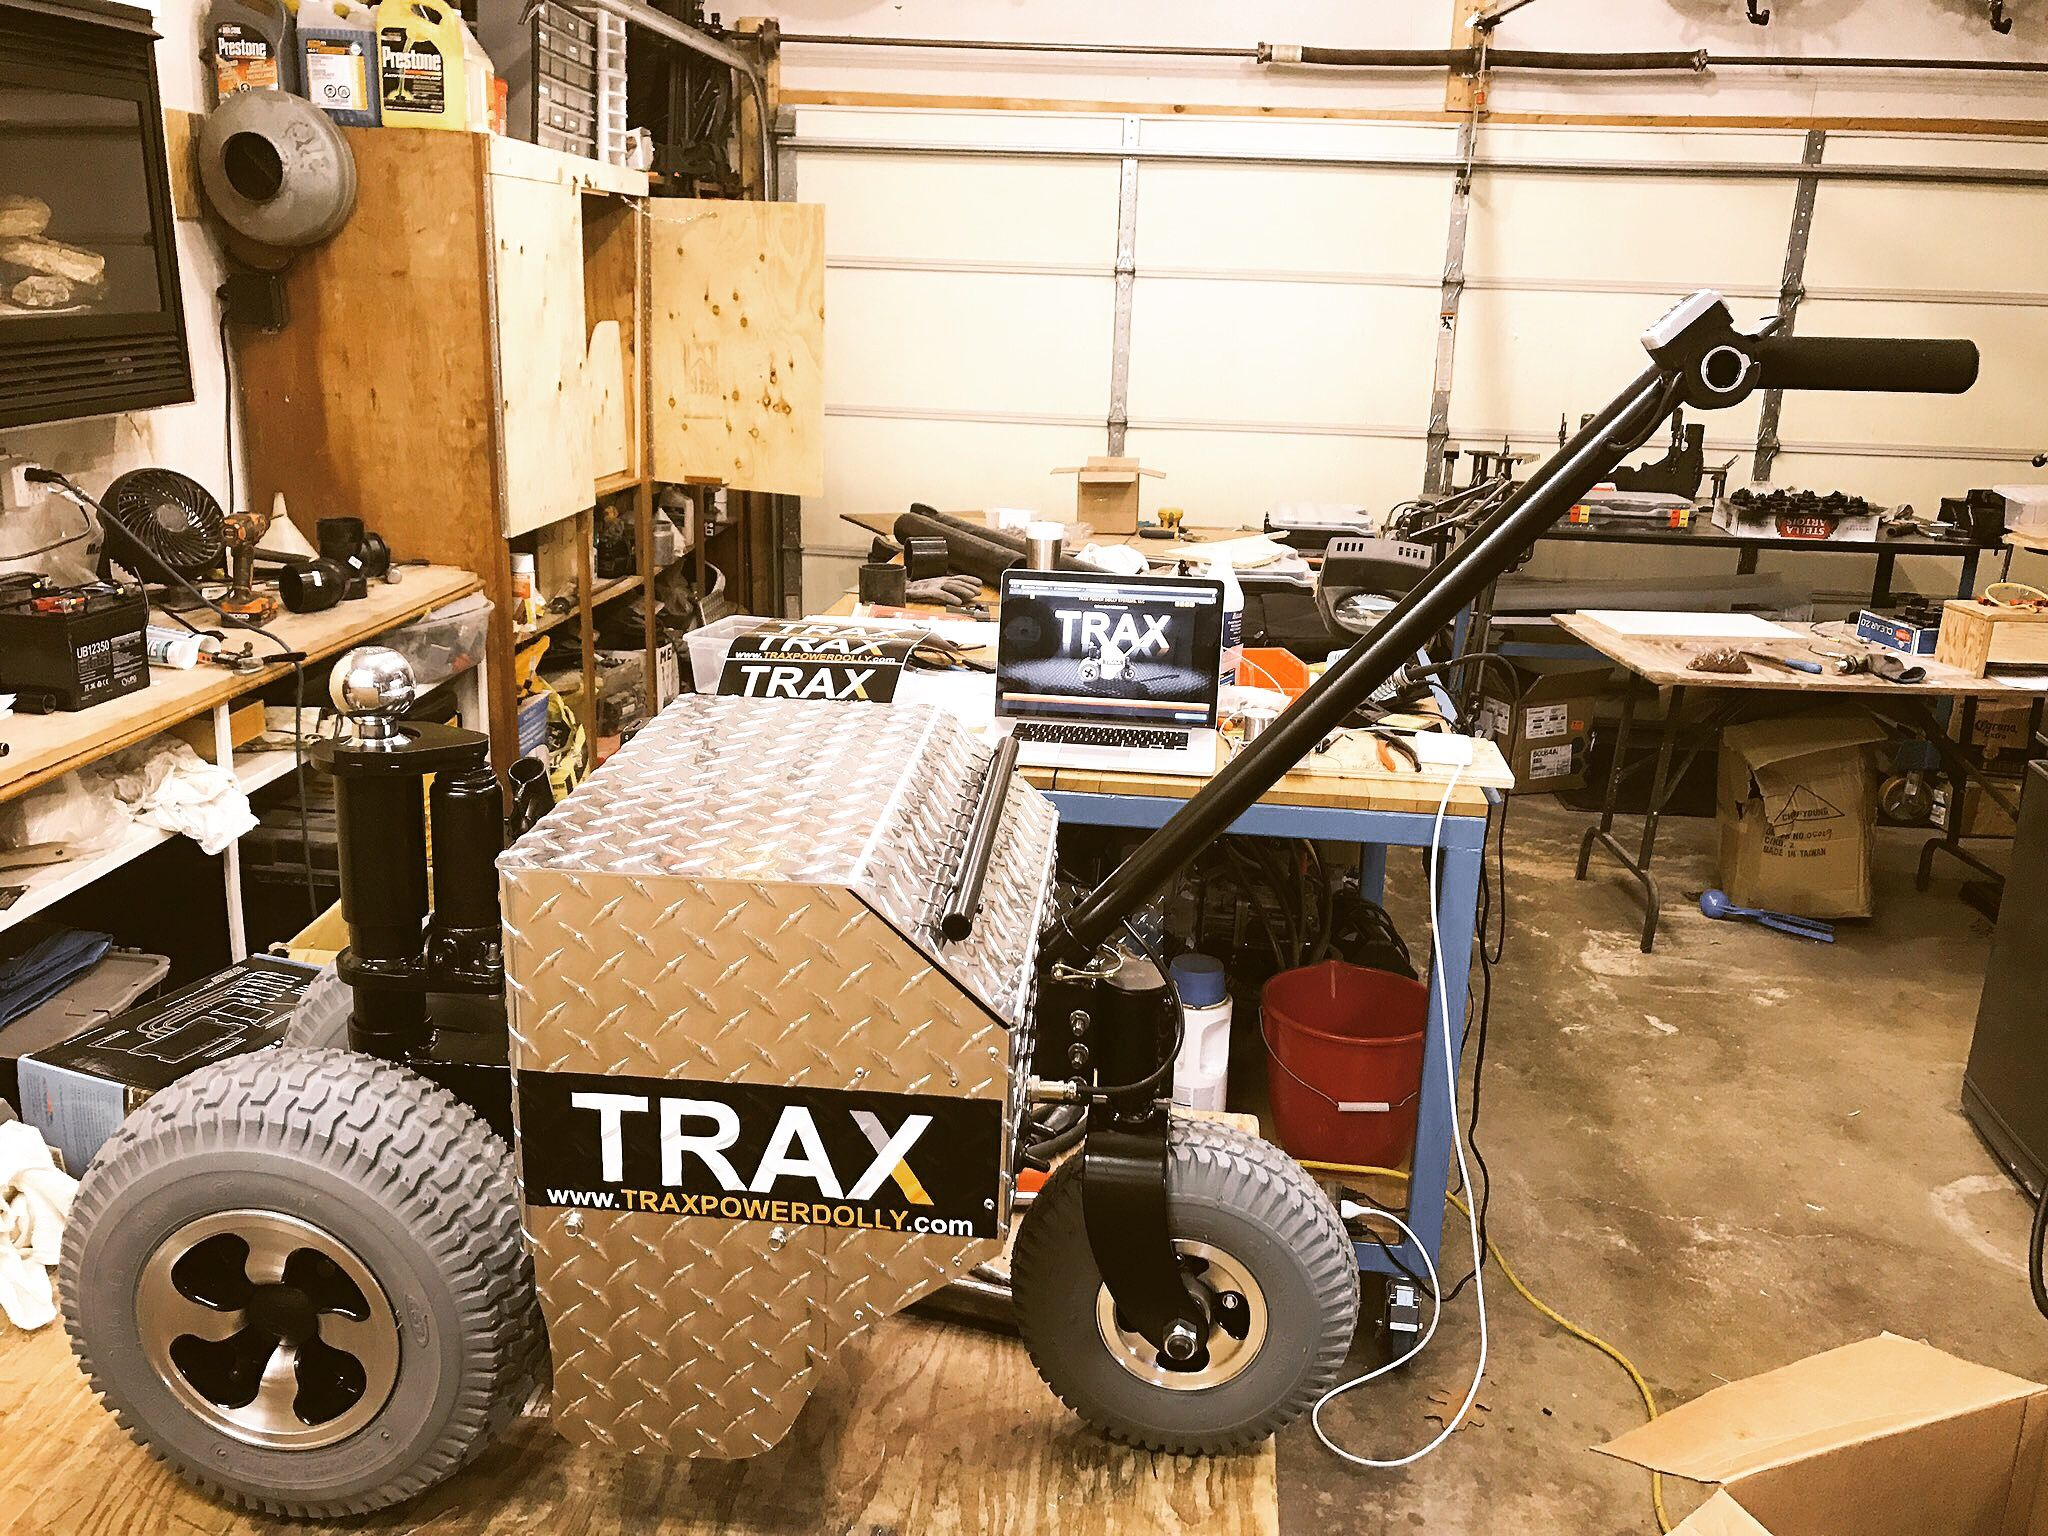 Easy Rv Trailer Moving With The Help Of Trax Tx6000 Power Dolly Weightdistributingtrailerhitchdiagramjpg Simply Hook Up To Your Trailers Ball Hitch Adapter And Push Or Pull Anywhere